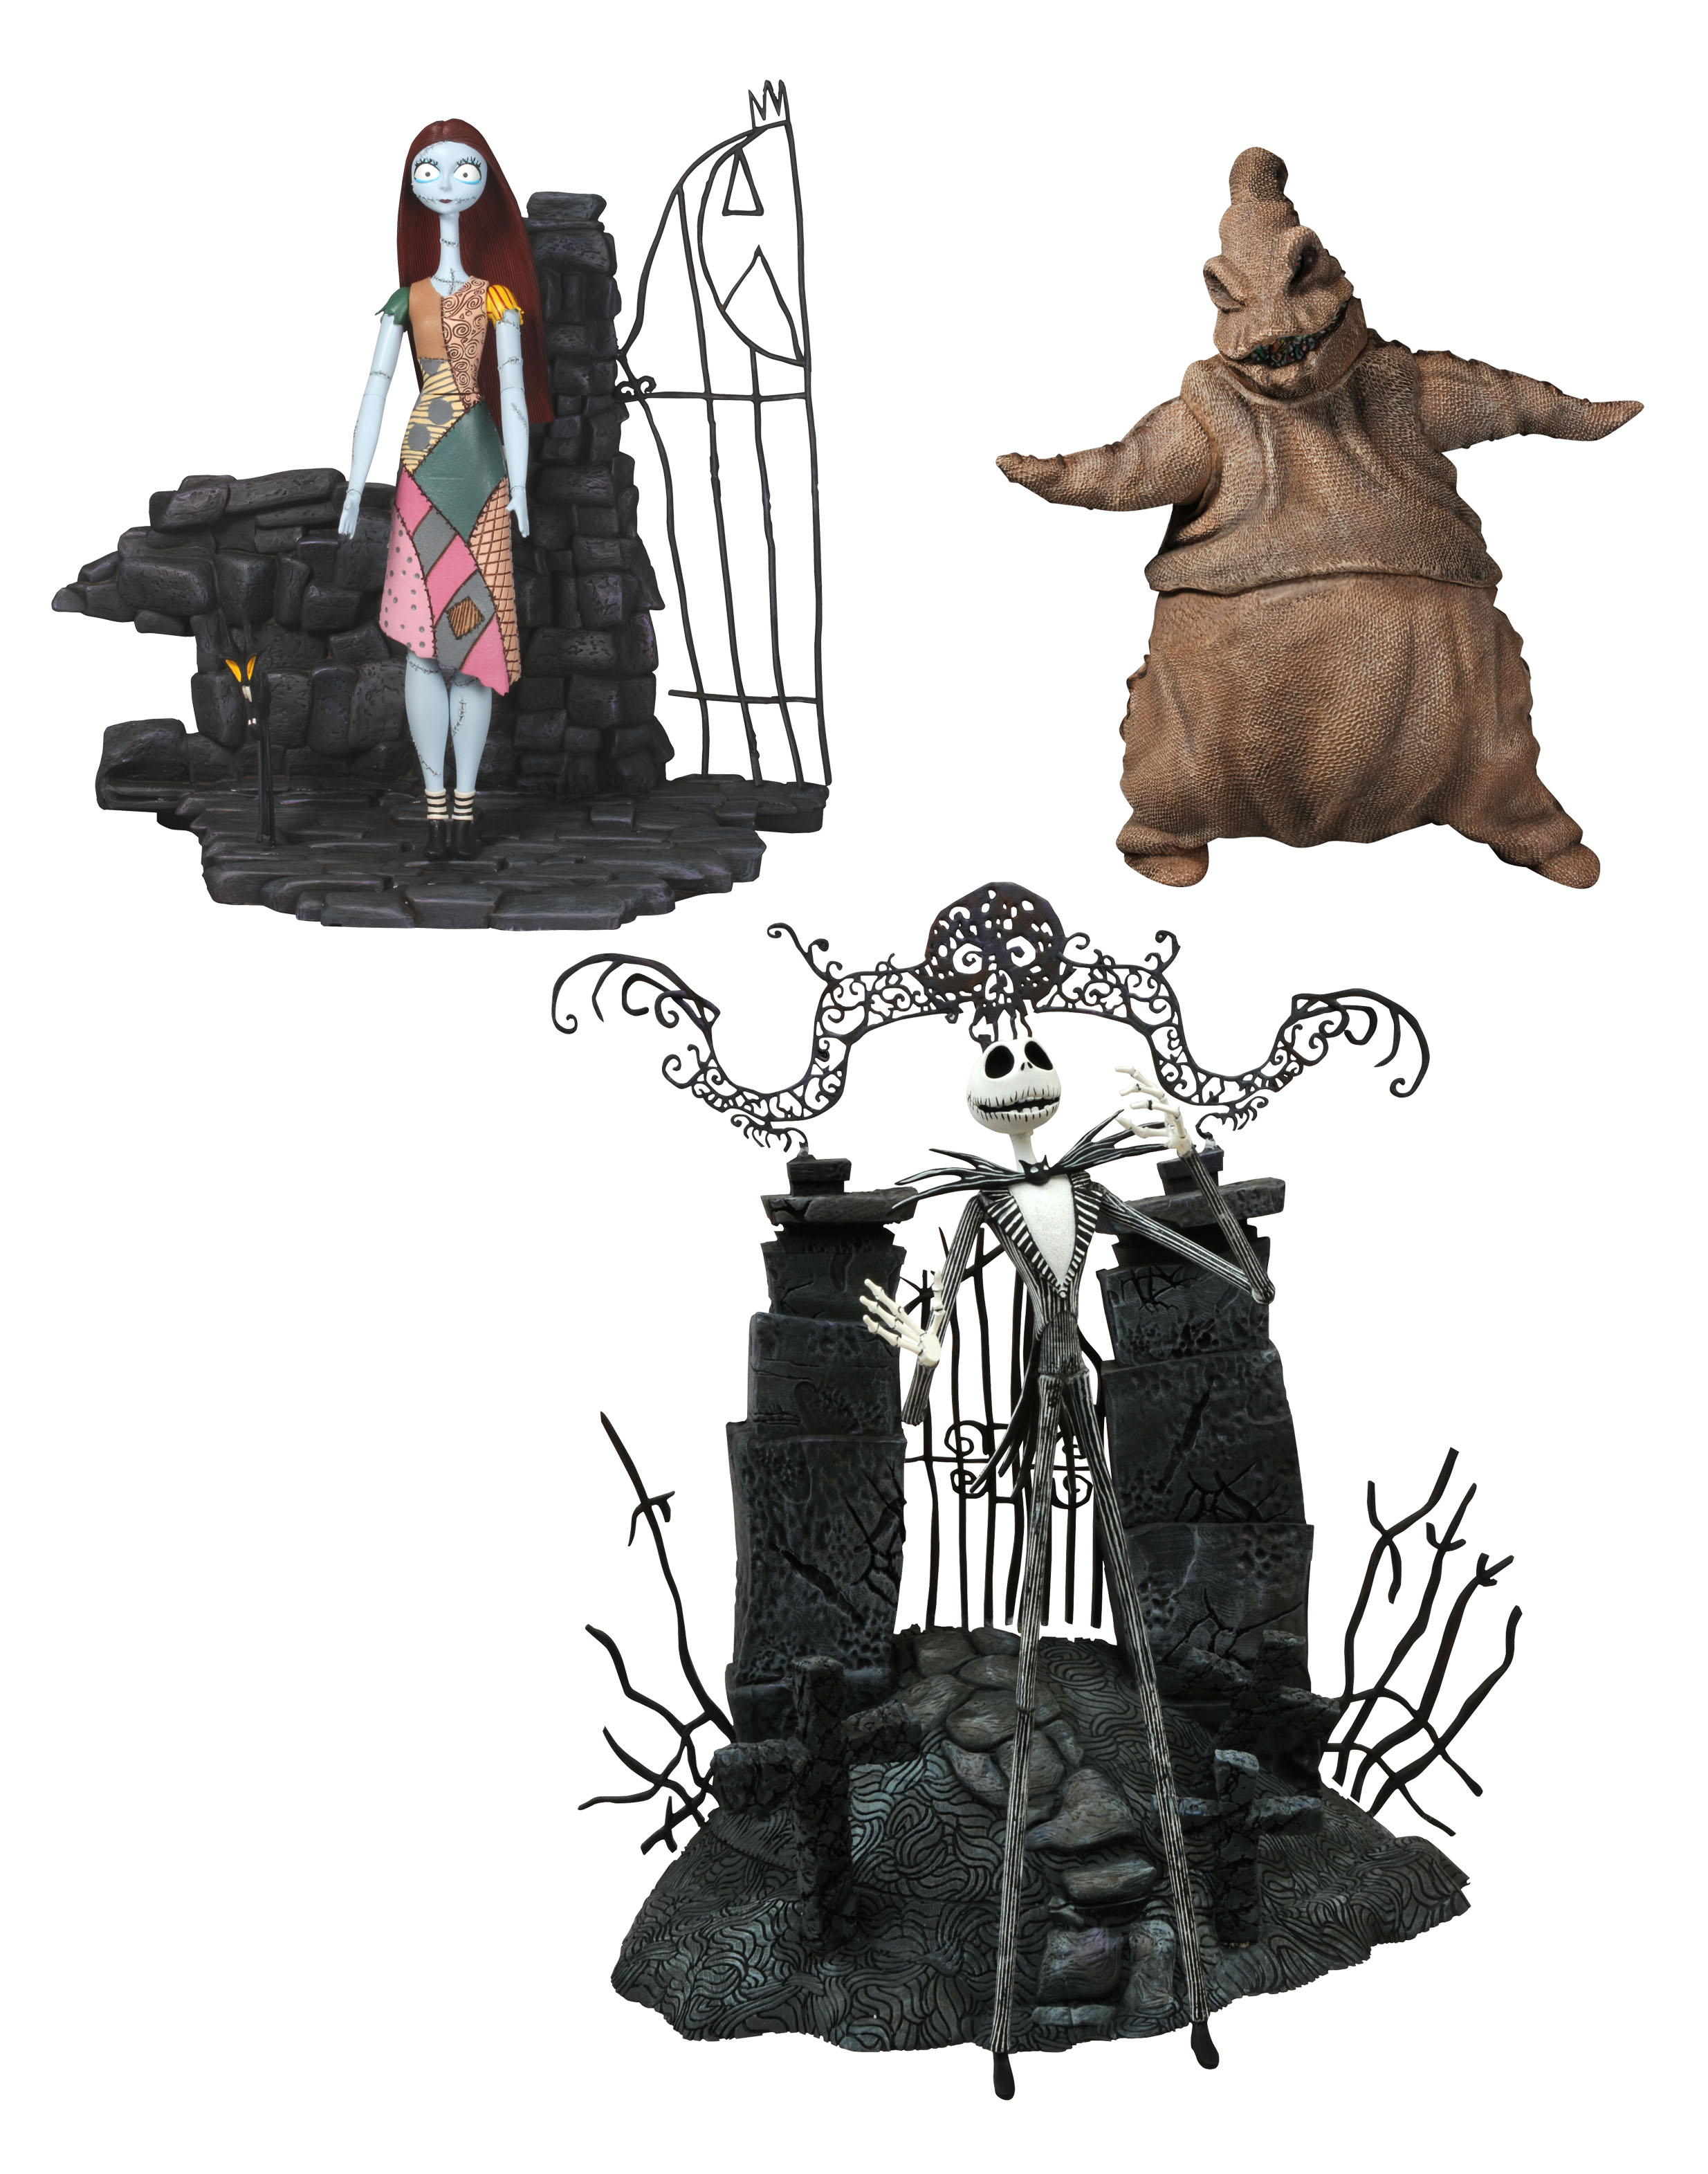 Nightmare Before Christmas toys and more arrive today from DST ...